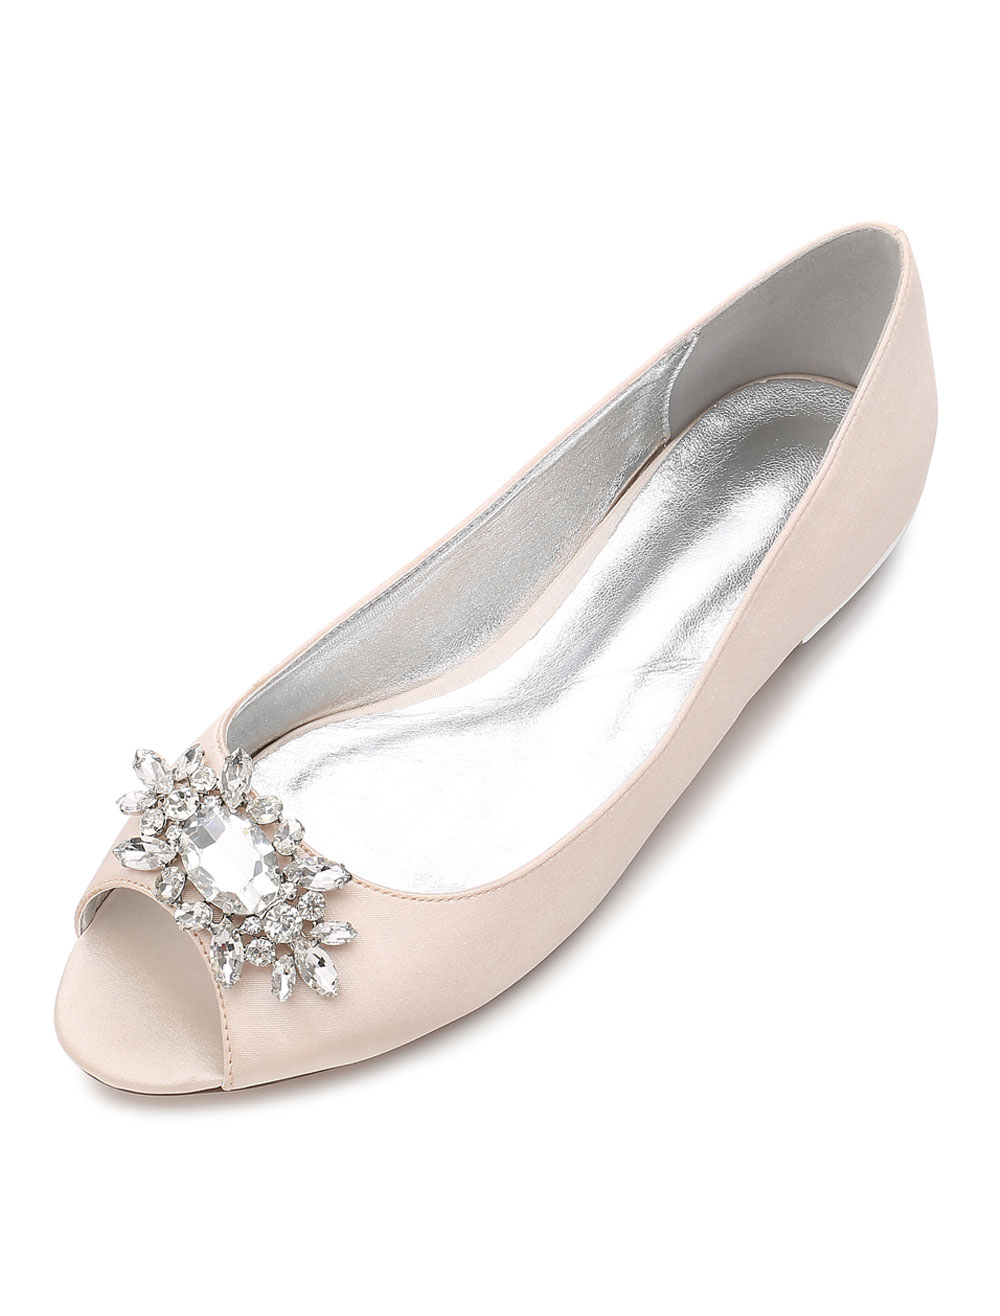 0a5505a0aa27 Wedding Shoes   Bridal Shoes- Shop the Latest Styles